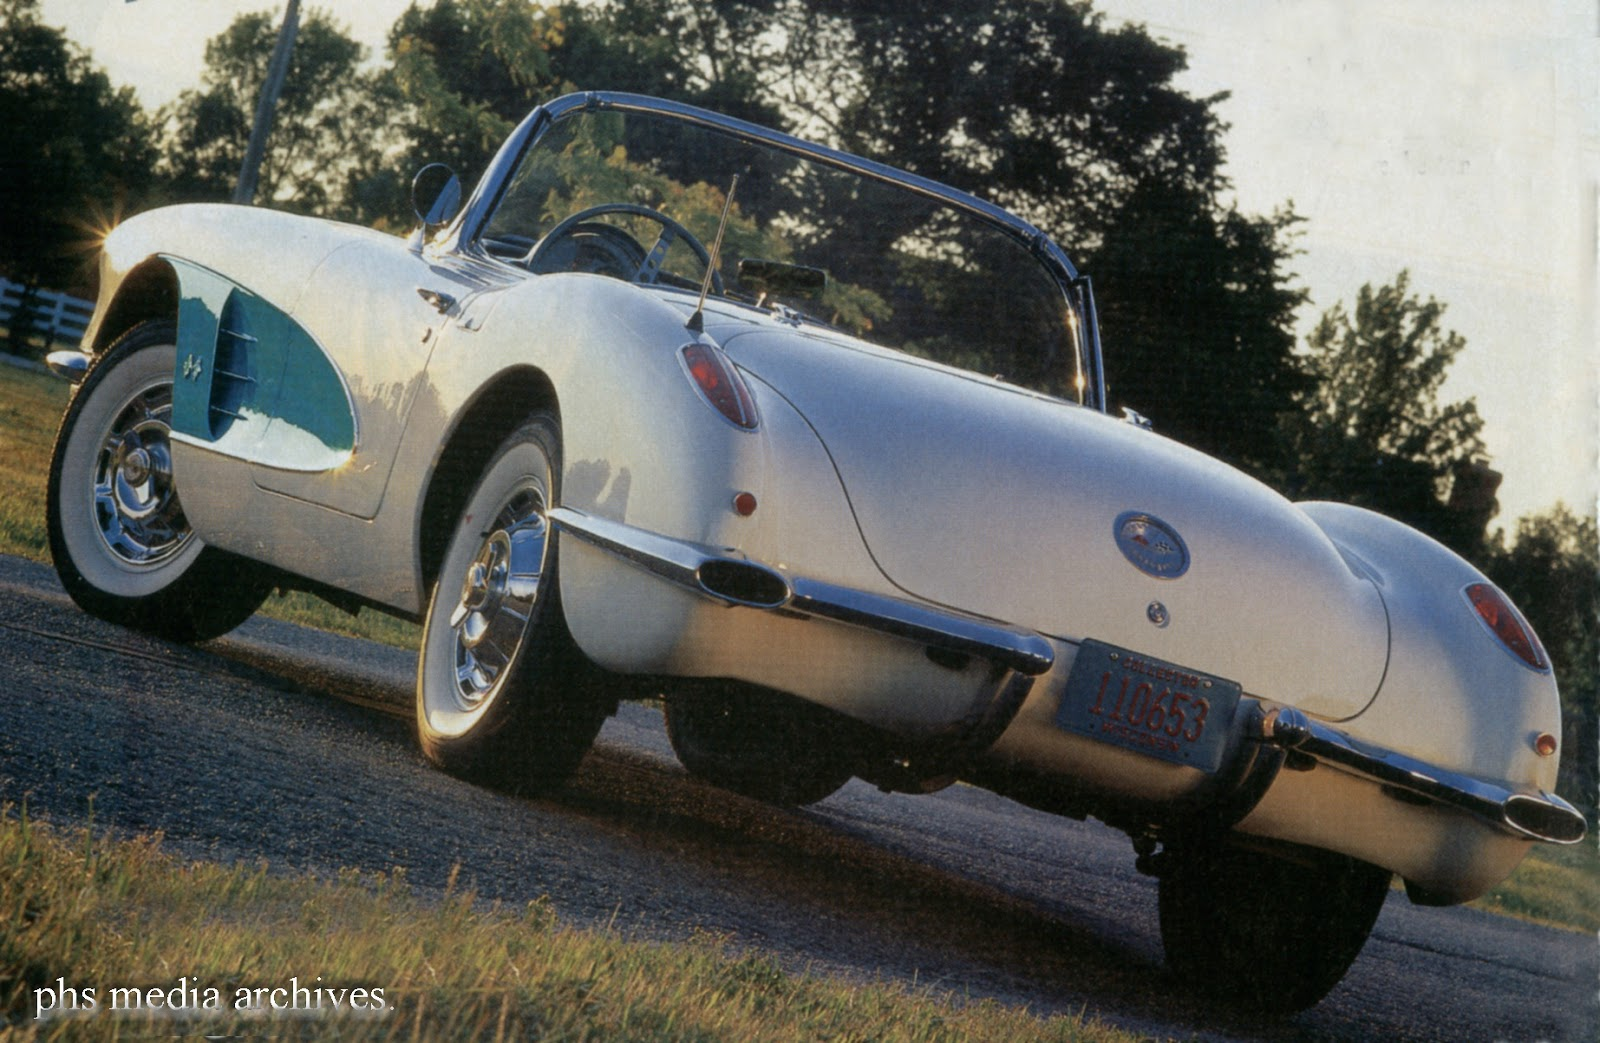 Corvette In 1960 Facts And Figures Phscollectorcarworld Studebaker Lark Wiring Diagram The Painted Cove Contrasting Color Was Optional For